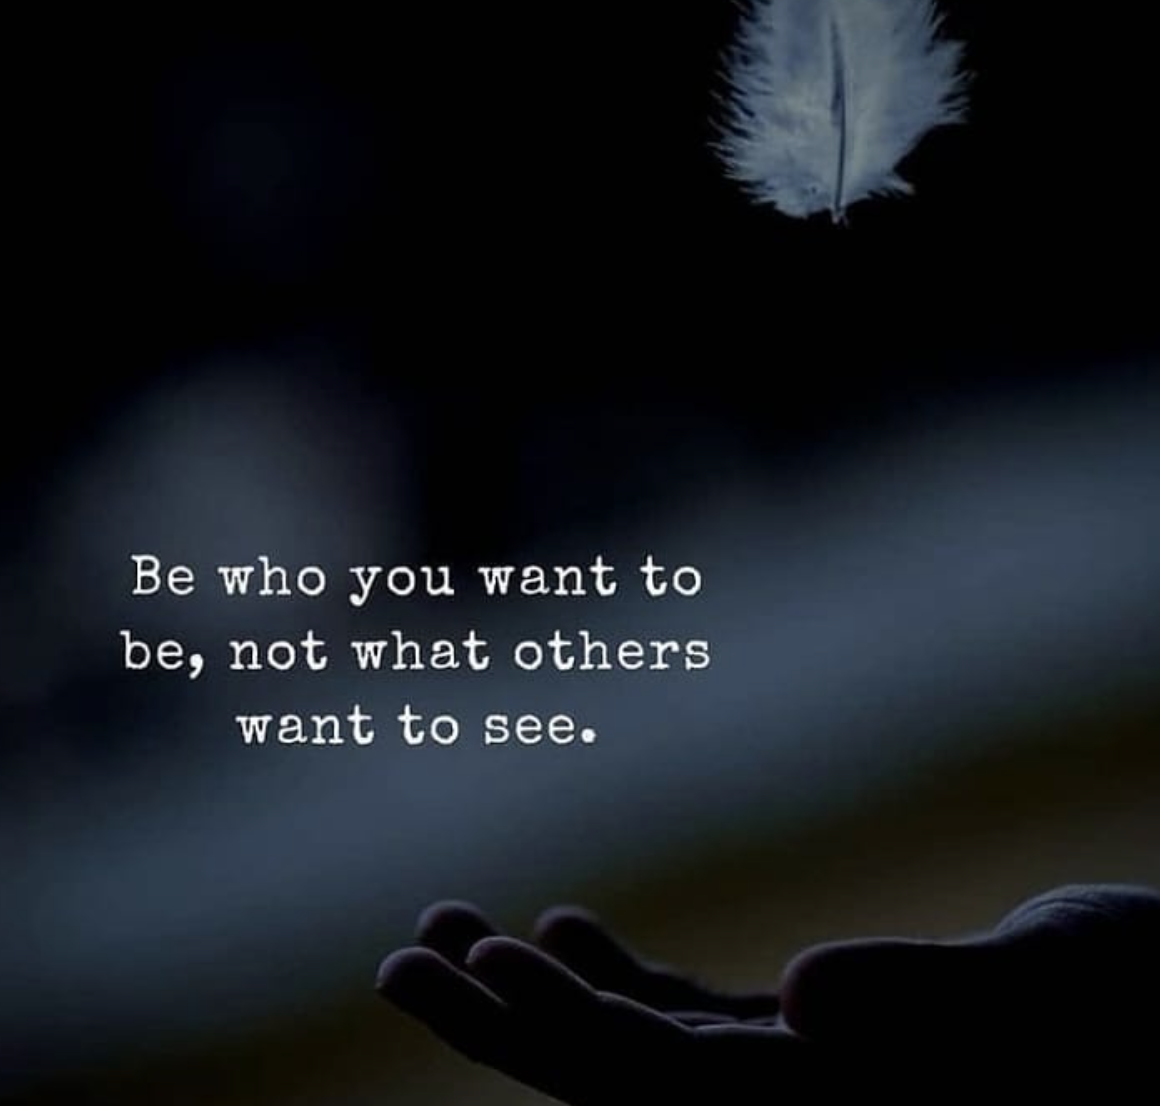 [Image] Be who you want to be, not what others want to see.